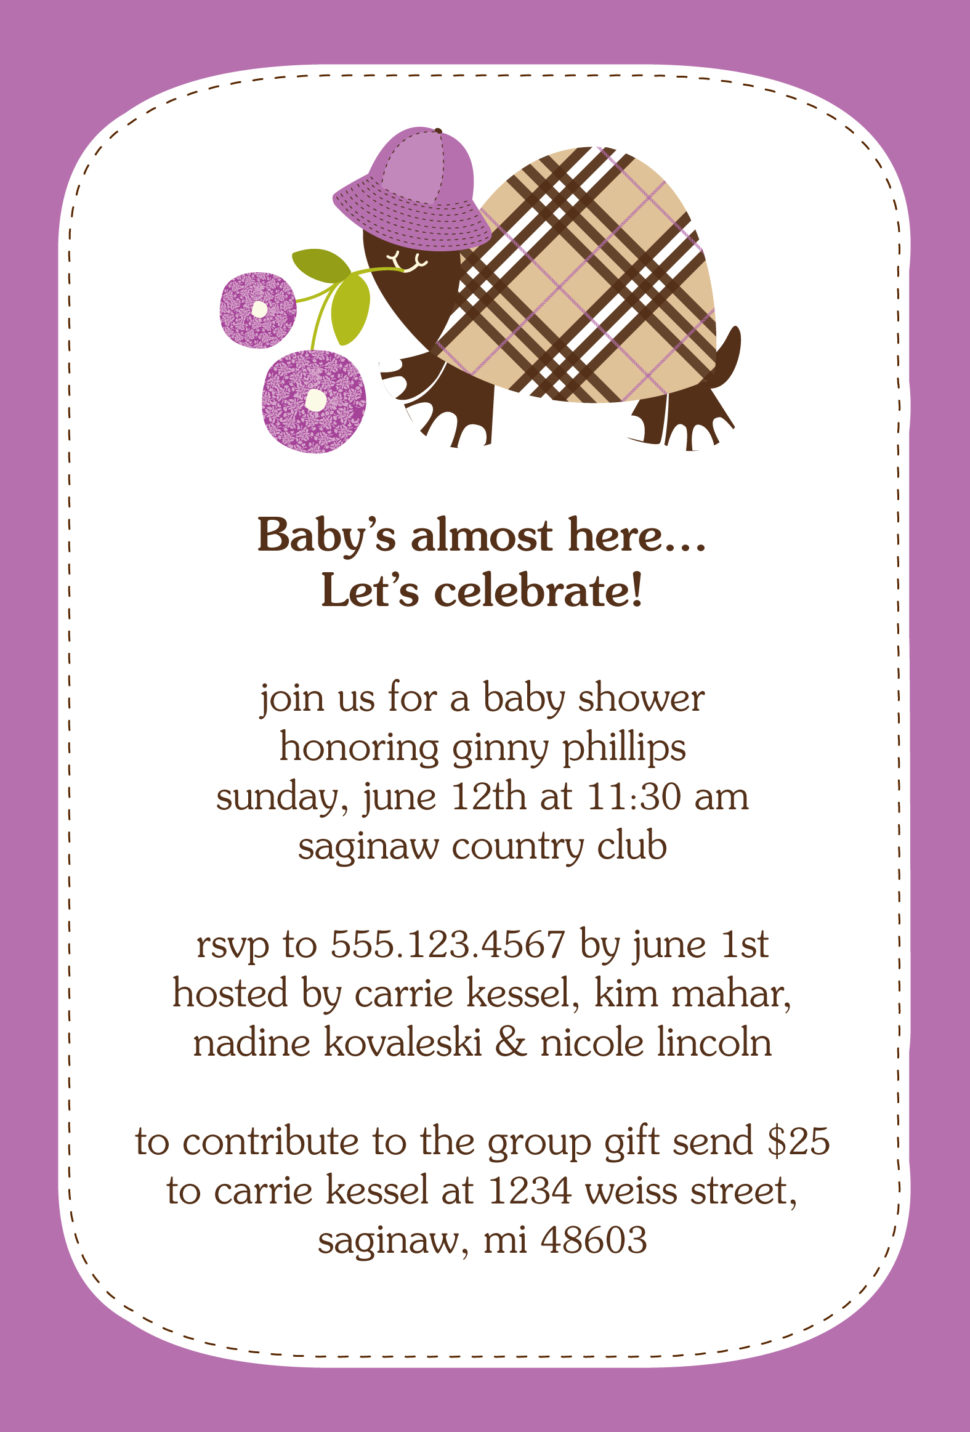 Medium Size of Baby Shower:baby Shower Halls With Baby Shower At The Park Plus Recuerdos De Baby Shower Together With Fun Baby Shower Games As Well As Baby Shower Hostess Gifts And Baby Shower Verses Recuerdos De Baby Shower Baby Favors Baby Shower Snapchat Filter Baby Shower Adalah